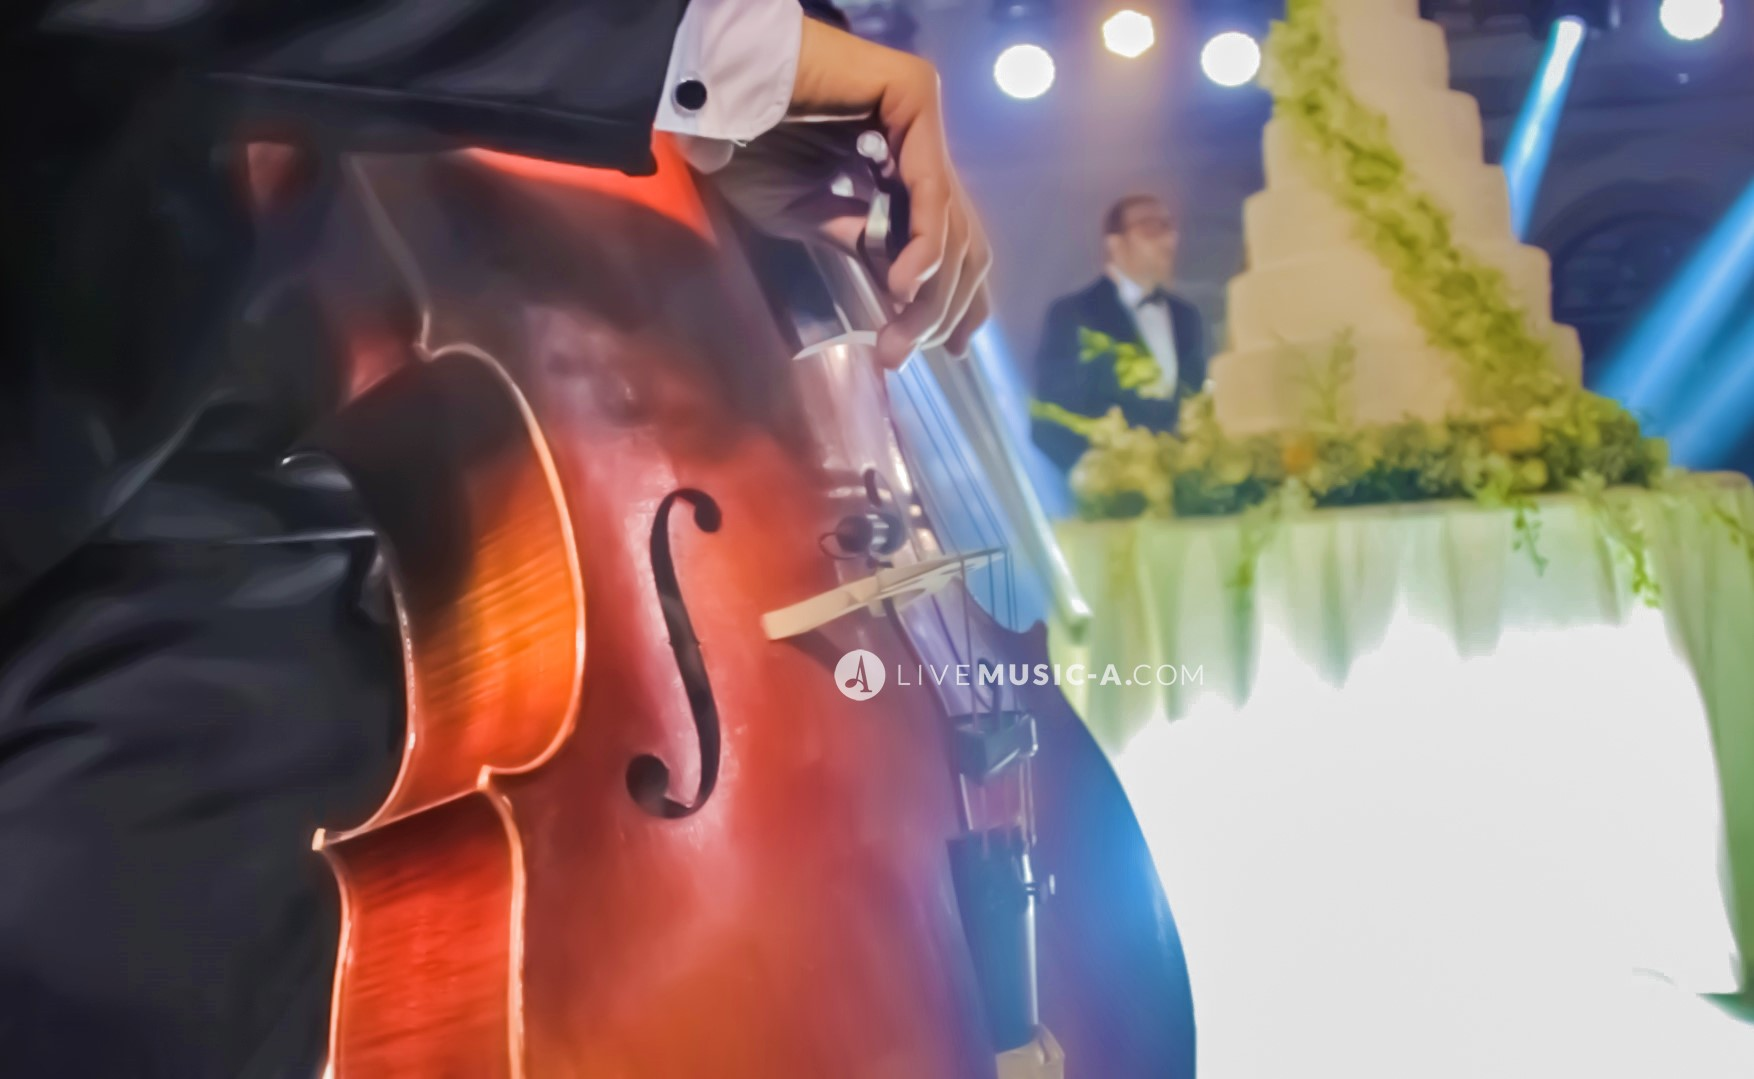 Cello at the cake cutting